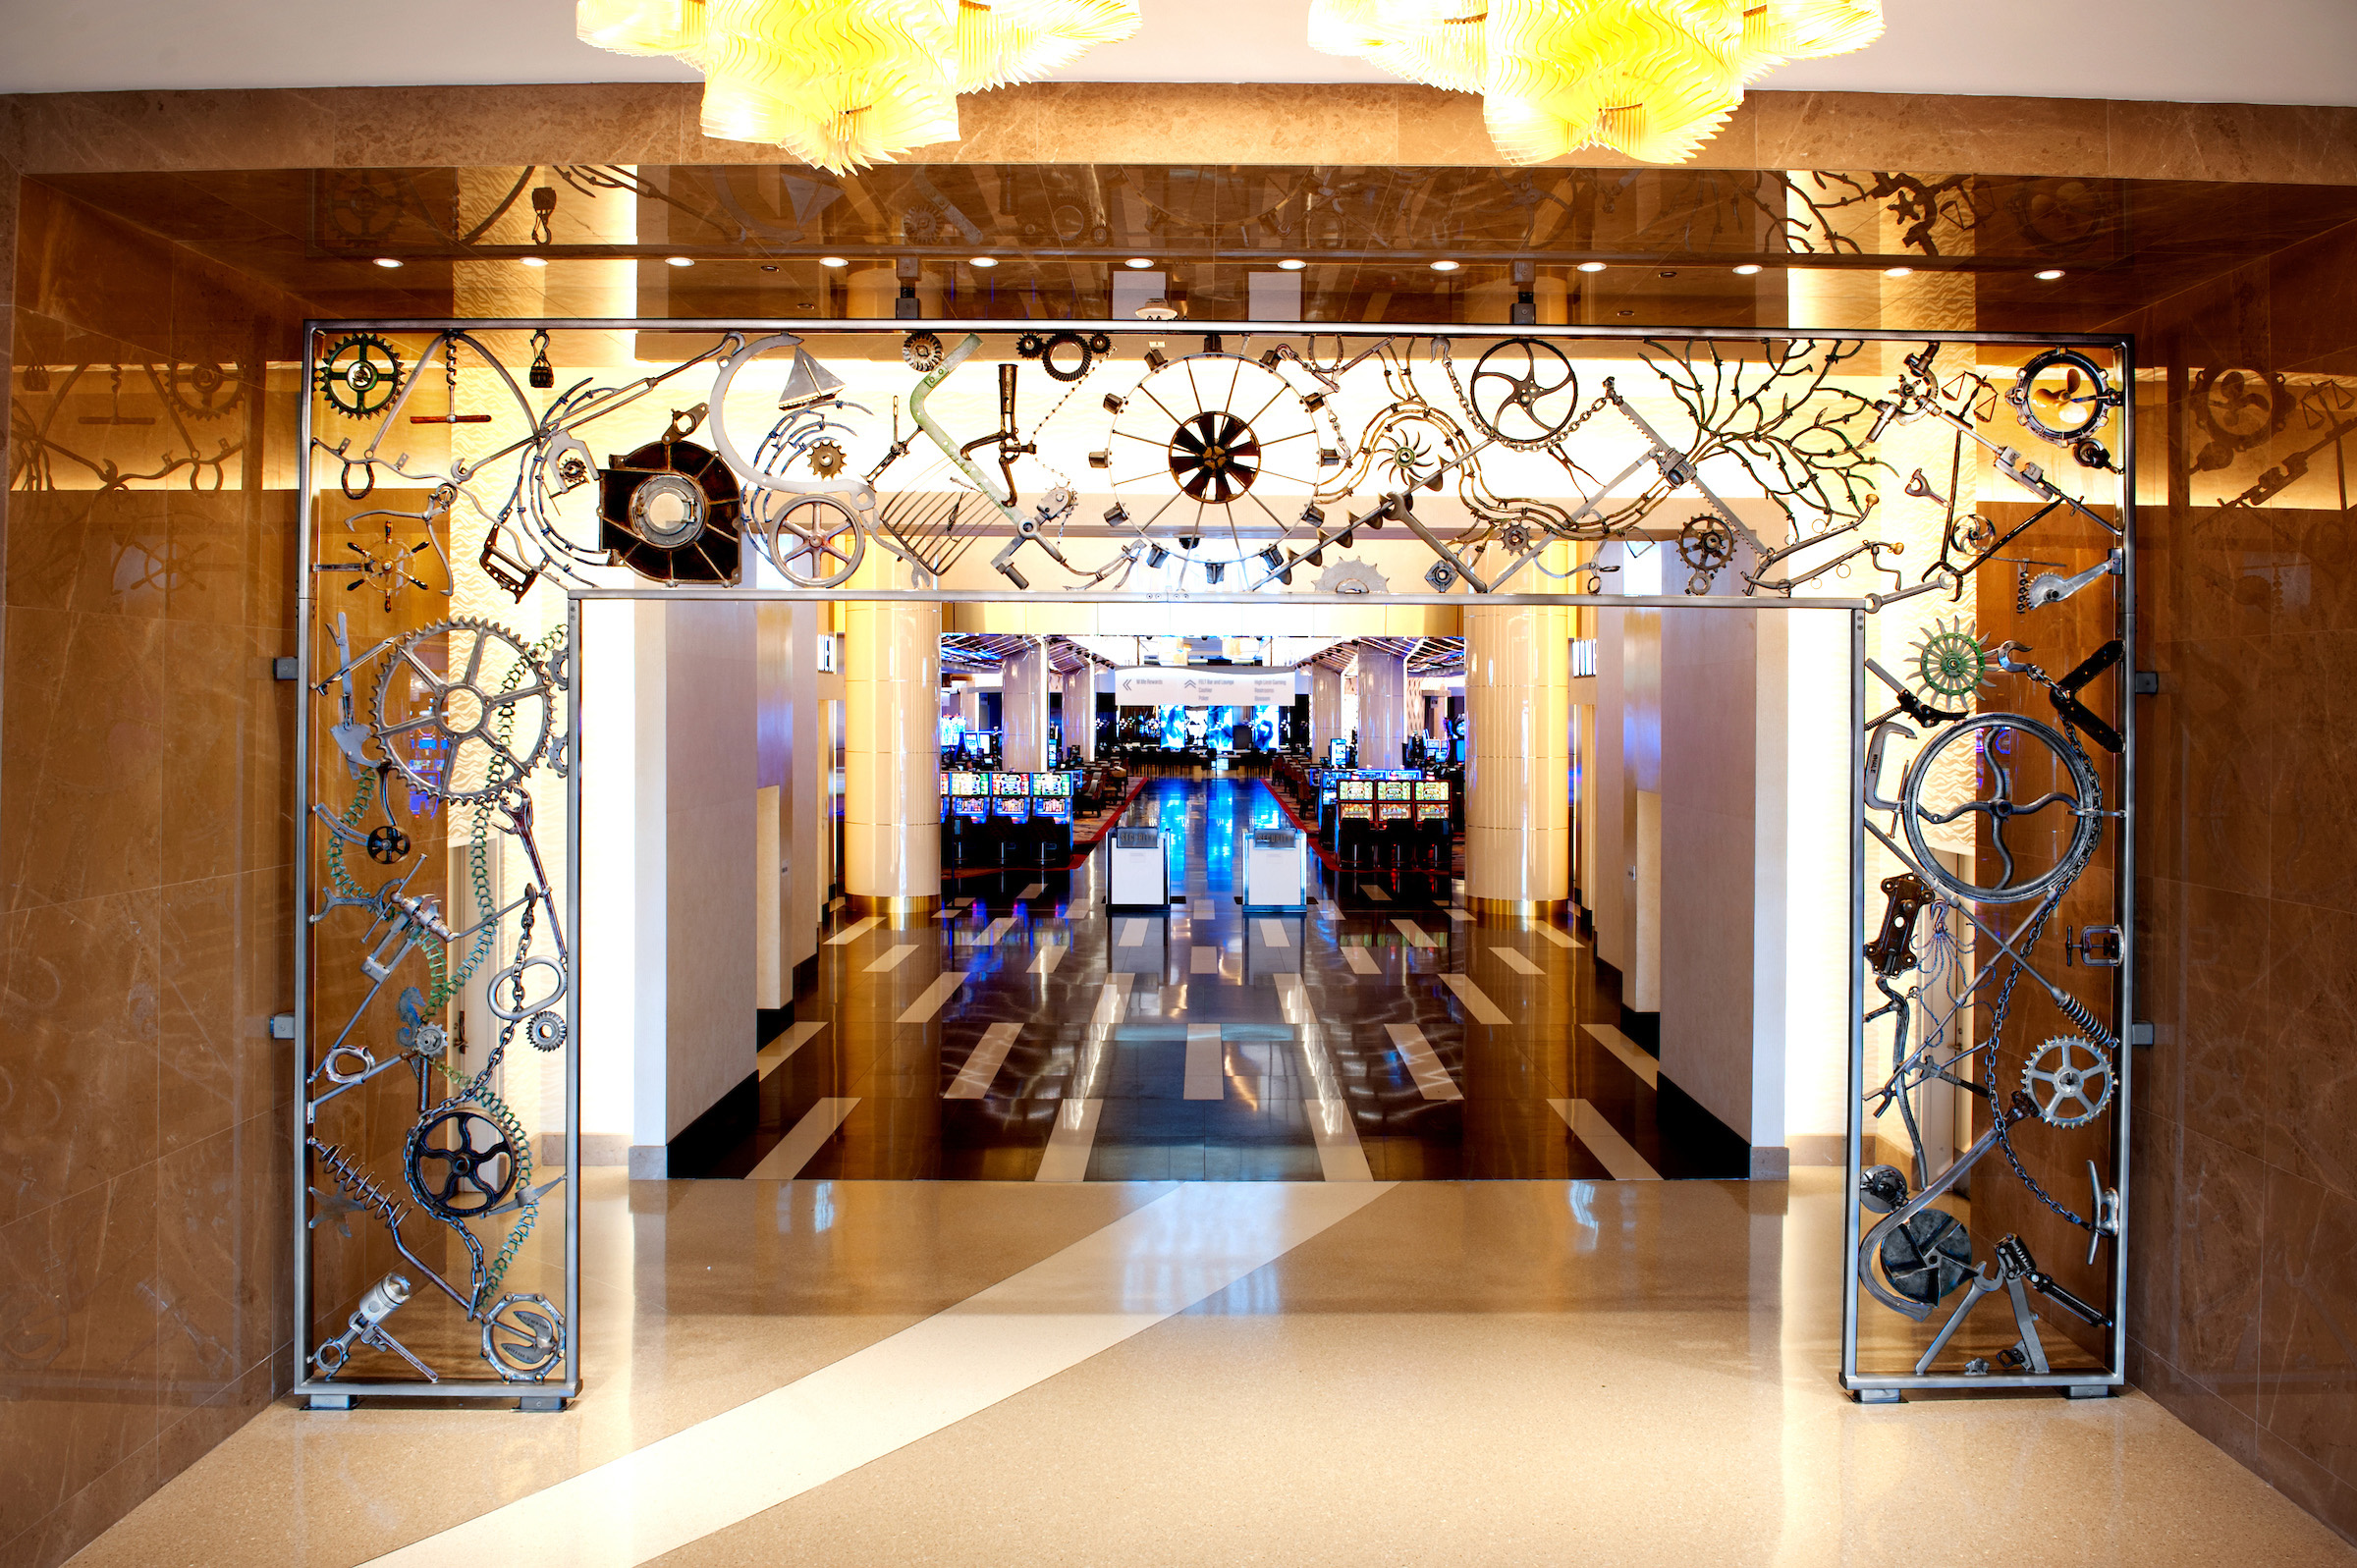 """Portal,"" a sculpted iron archway designed by legendary folk artist Bob Dylan for MGM National Harbor, is his first permanent display of public art."